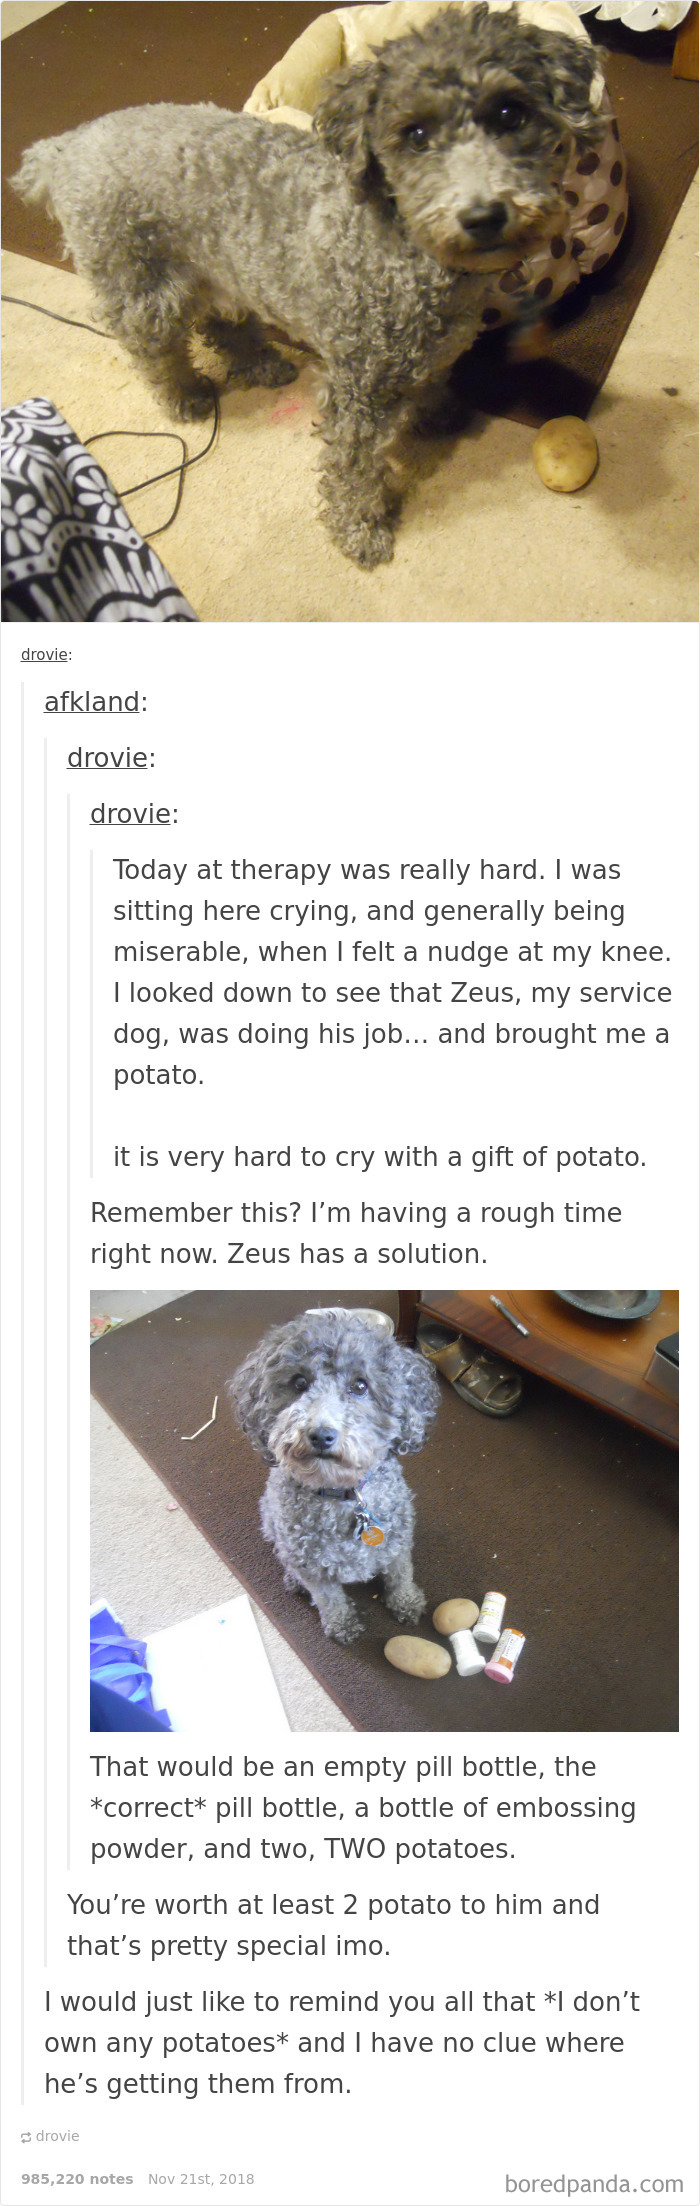 How To Service Dog